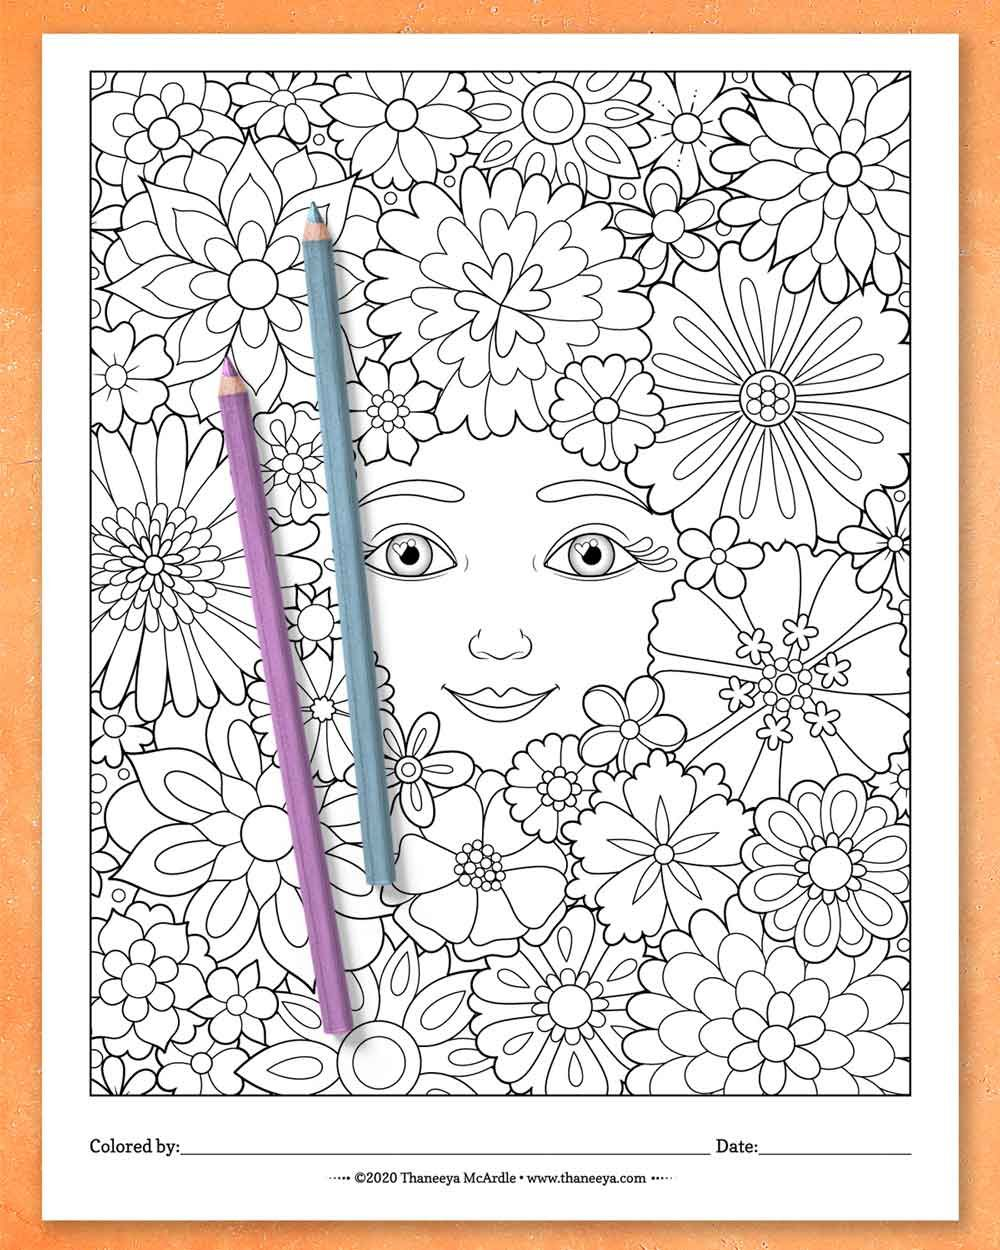 Enchanted Faces Coloring Pages Printable Female Coloring Pages For Adults Teens And Kids Art Is Fun Coloring Pages Abstract Coloring Pages Detailed Coloring Pages